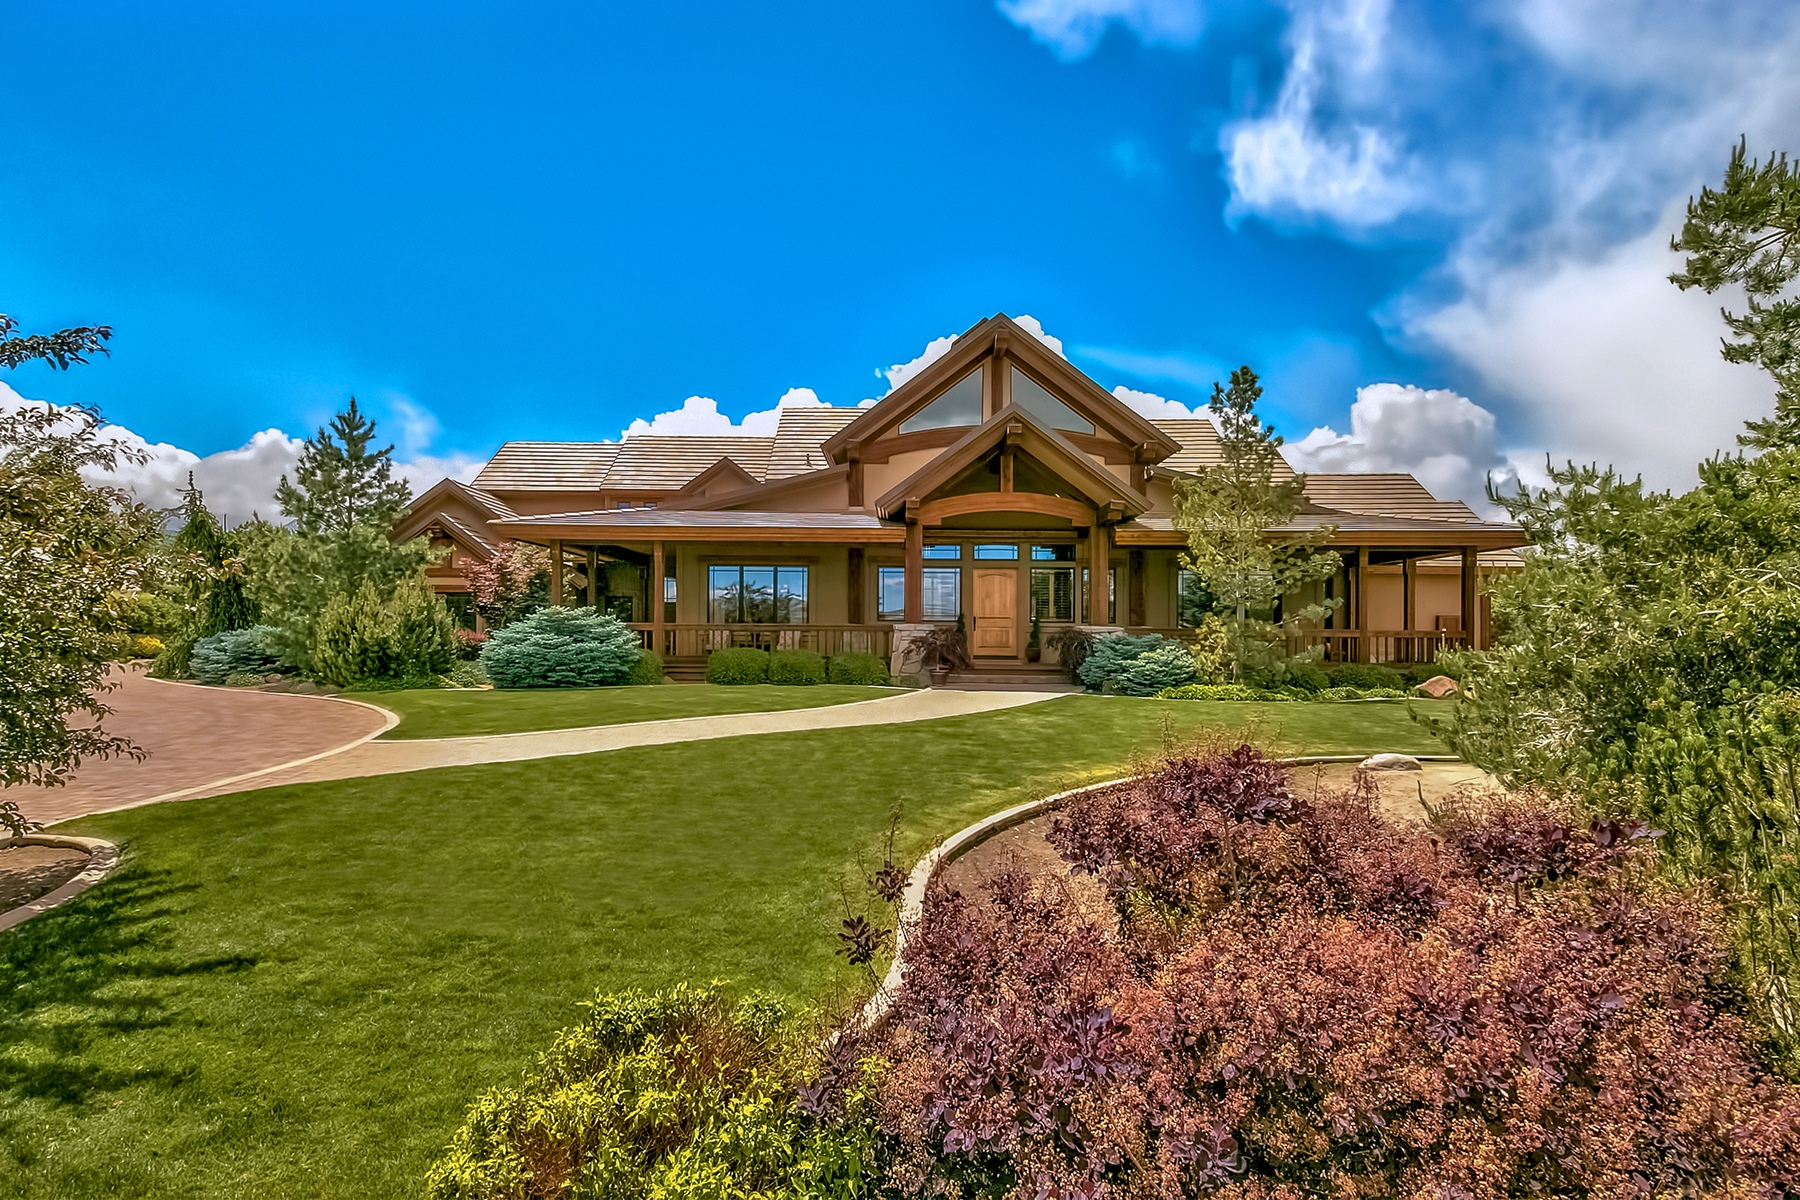 Villa per Vendita alle ore 6060 Rock Creek Court Reno, Nevada, 89511 Lake Tahoe, Stati Uniti